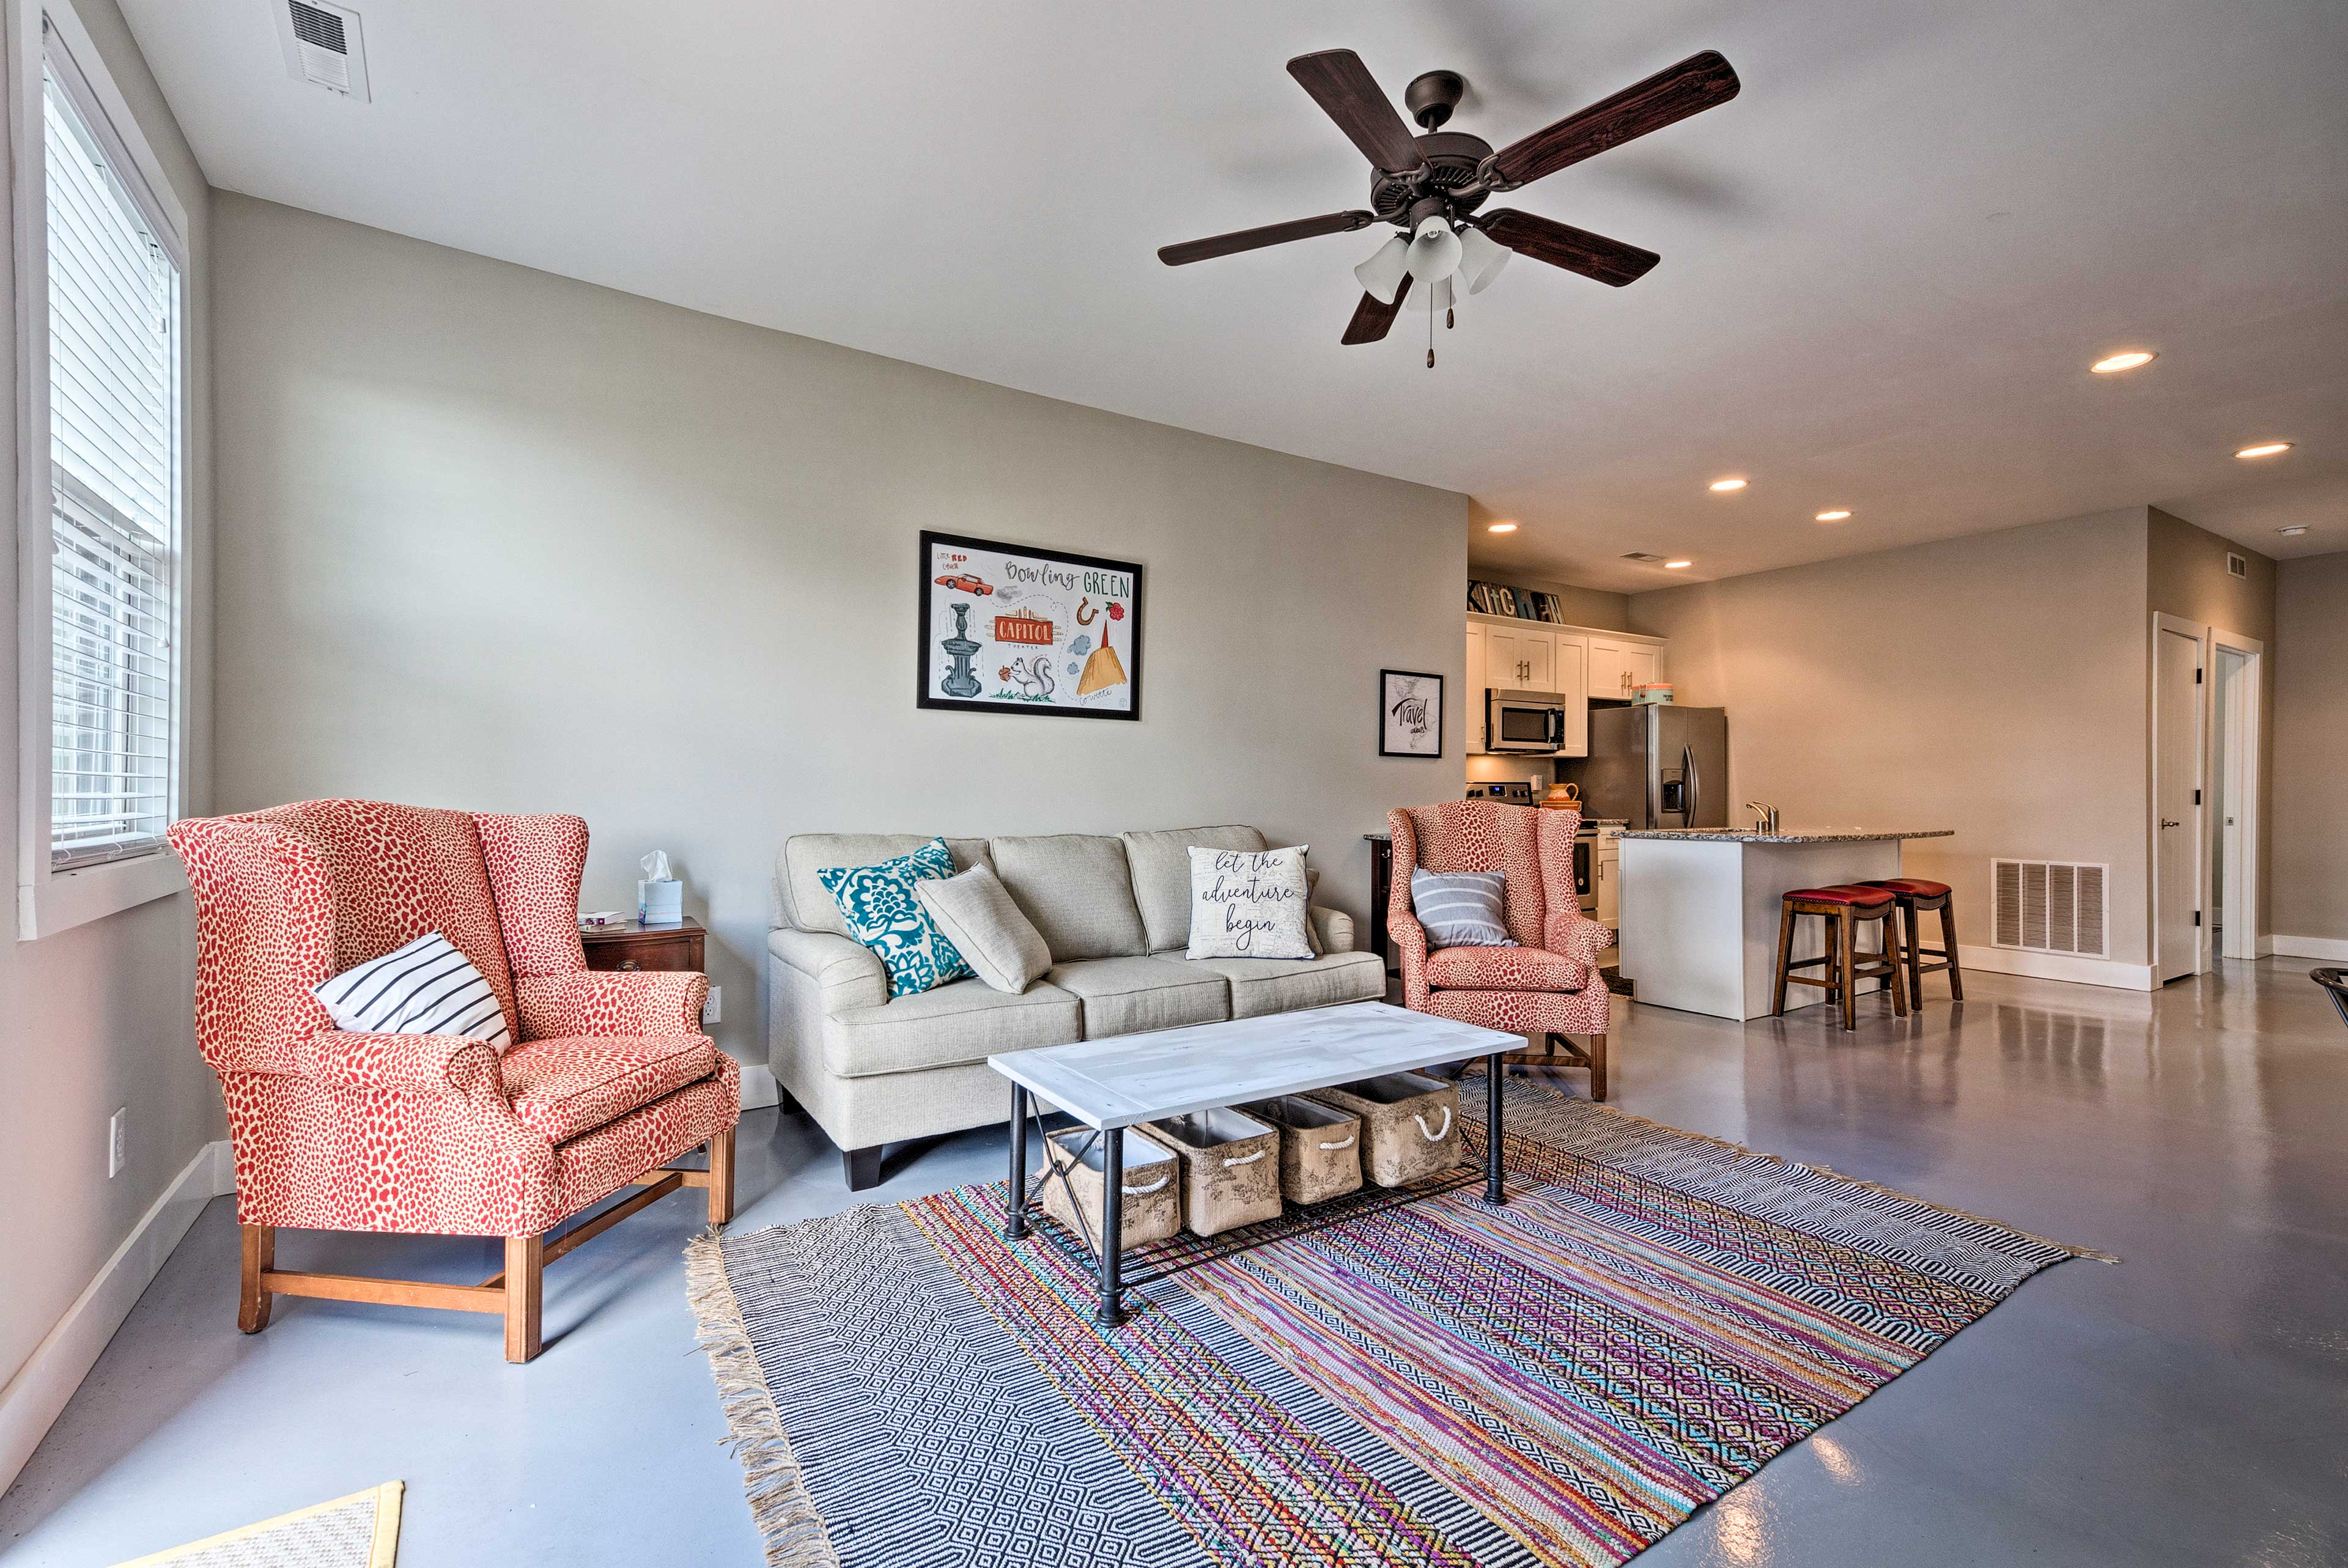 Step inside and unwind among the cozy decor and modern amenities.